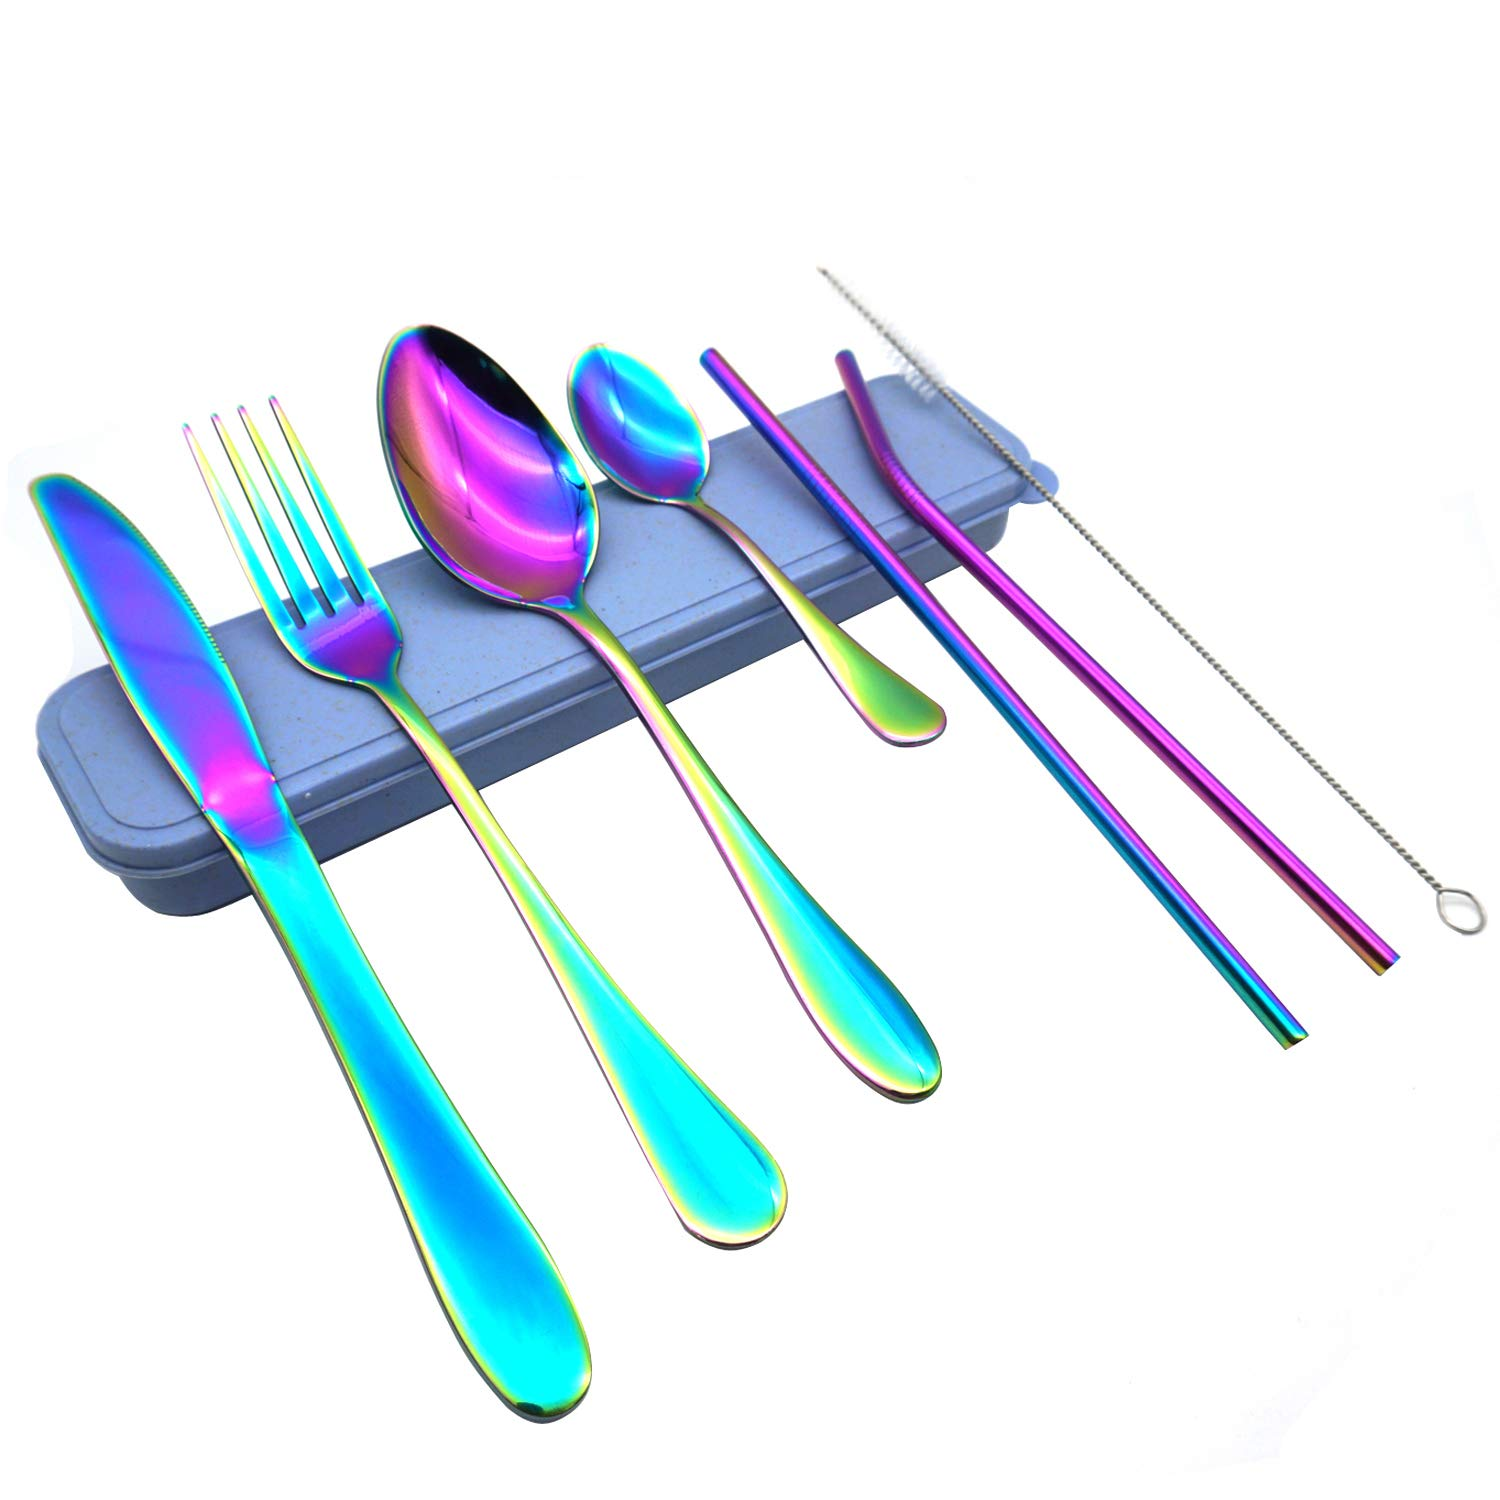 Silverware Set with Straws, I2USHOP 7 Piece Rainbow Stainless Steel Silverware Set for Travel or Camping, Mirror Polished, Dishwasher Safe